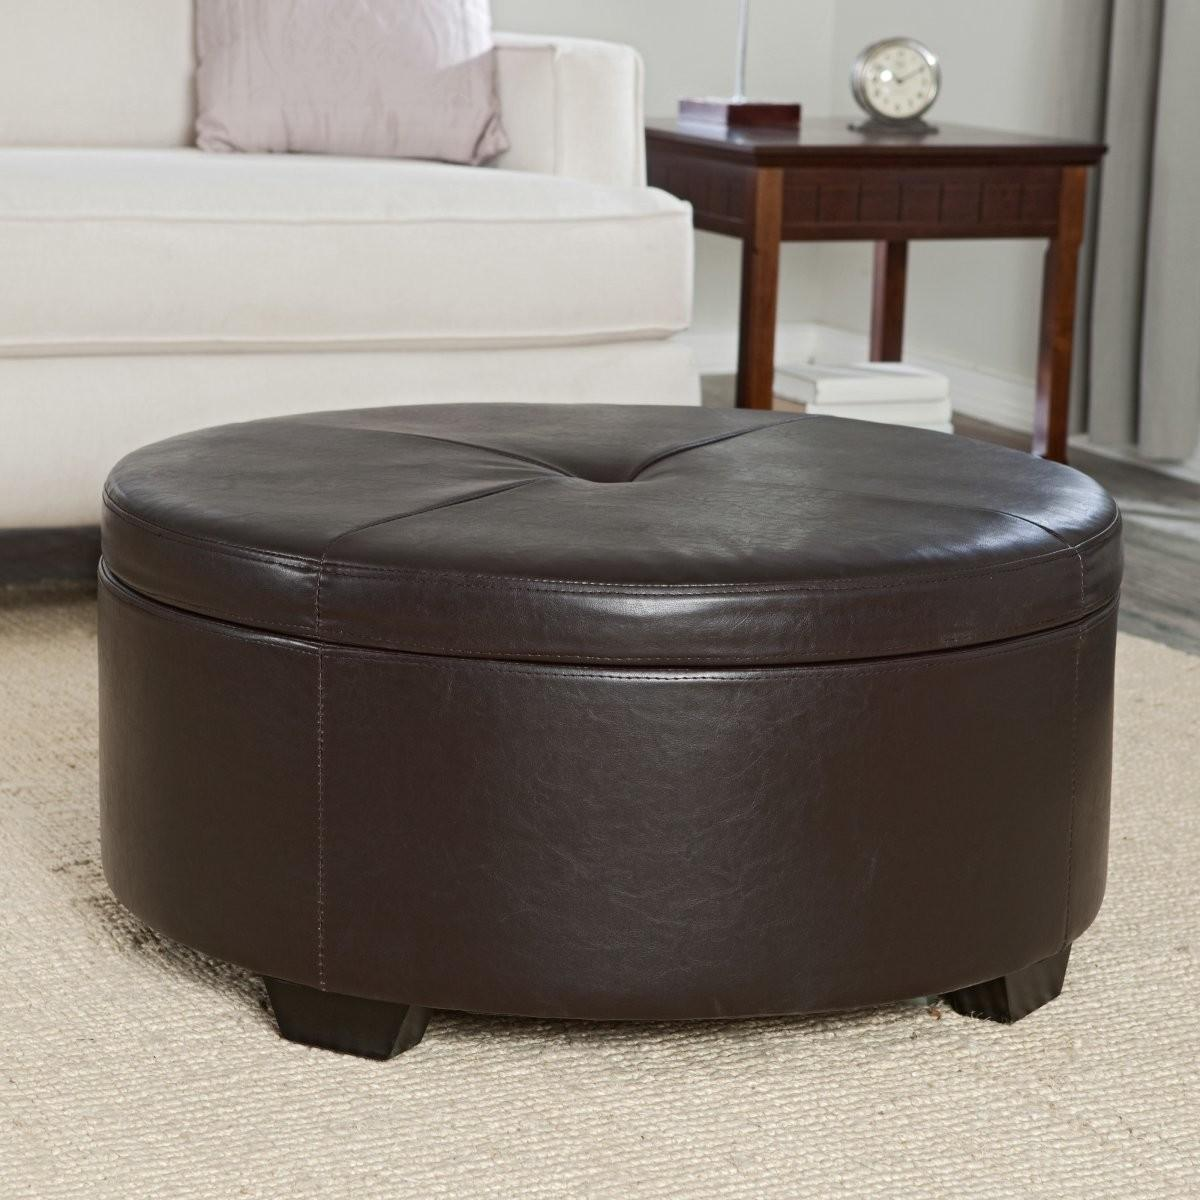 Living Room Coffee Table Simple Stylish Leather Ottoman